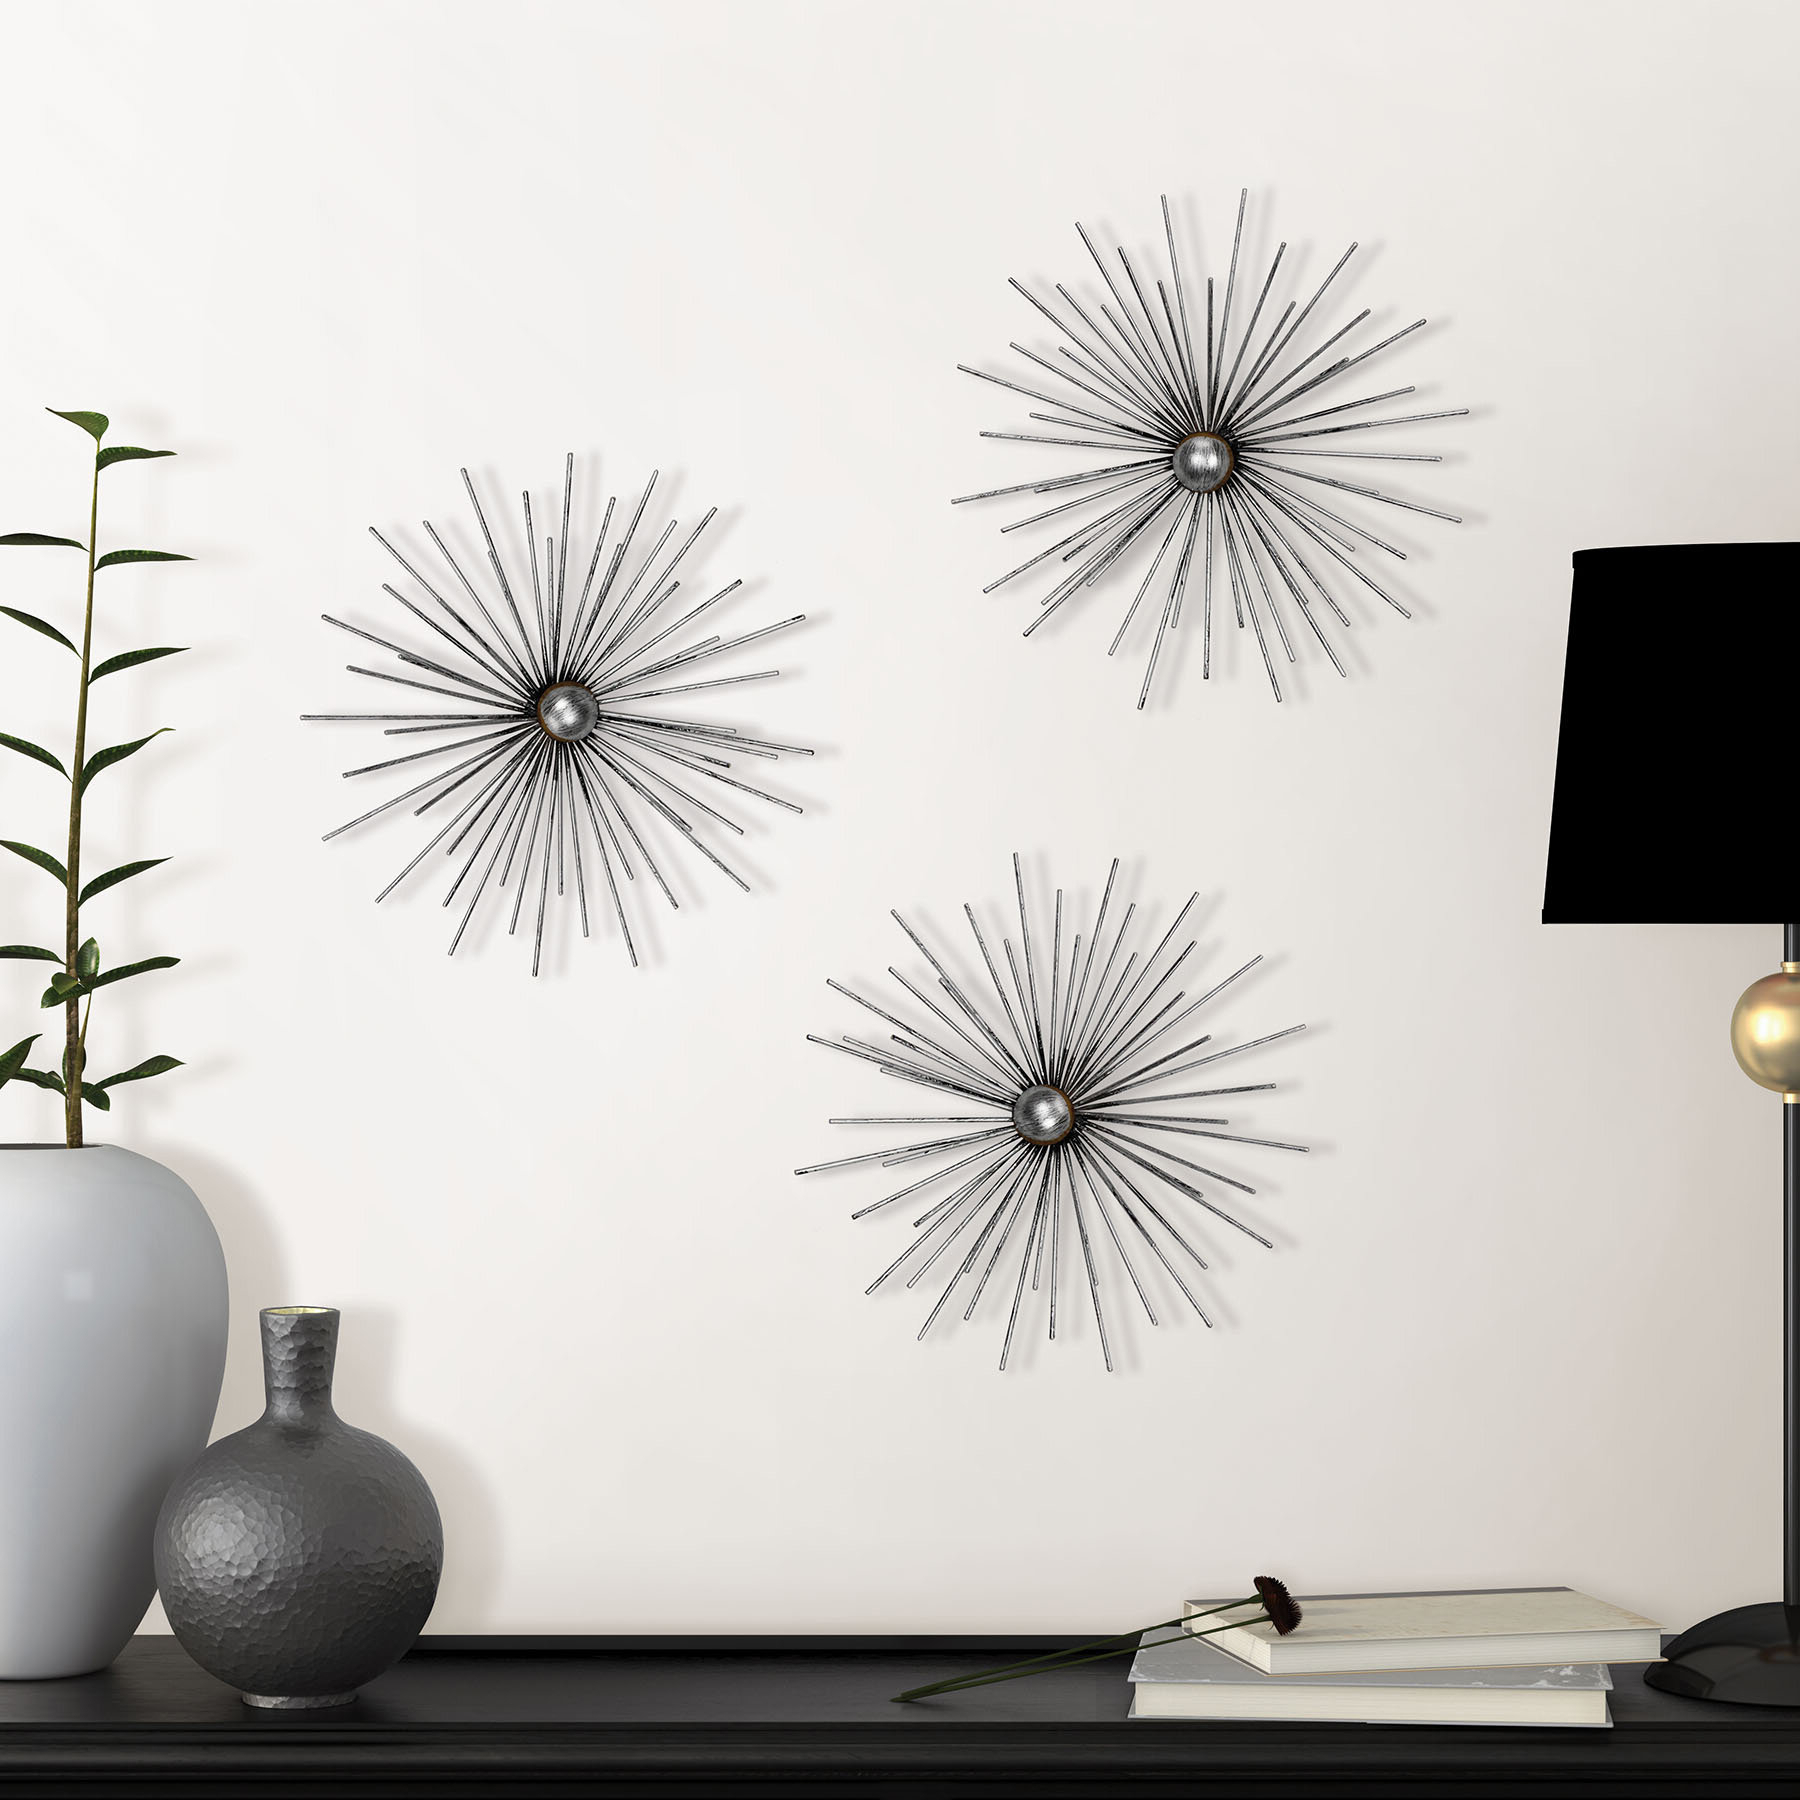 Wayfair With Regard To Most Recent 2 Piece Starburst Wall Decor Sets (Gallery 5 of 20)